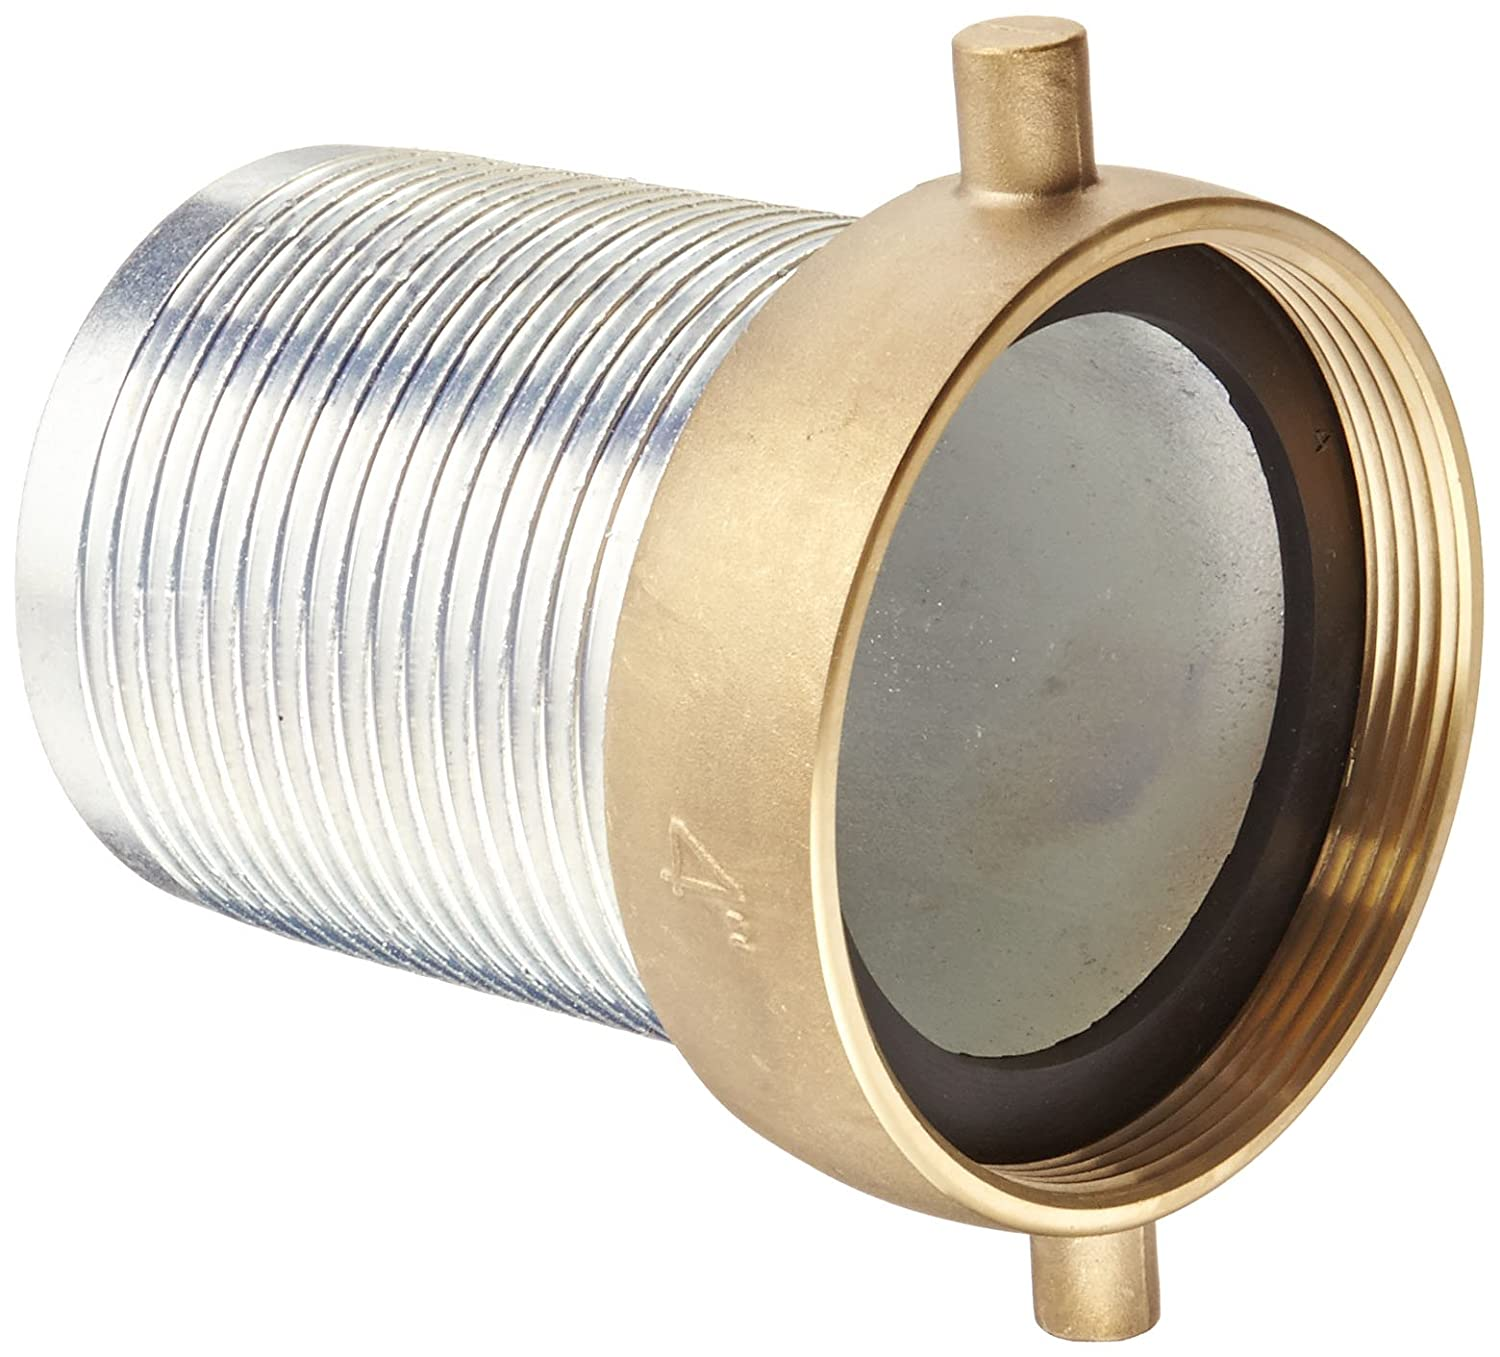 4 NPSM Female x 4 Hose ID Barbed 4 NPSM Female x 4 Hose ID Barbed Dixon Valve /& Coupling Dixon Valve FCSB400 Plated Steel Shank//Water Fitting King Short Shank Suction Coupling with Brass Nut